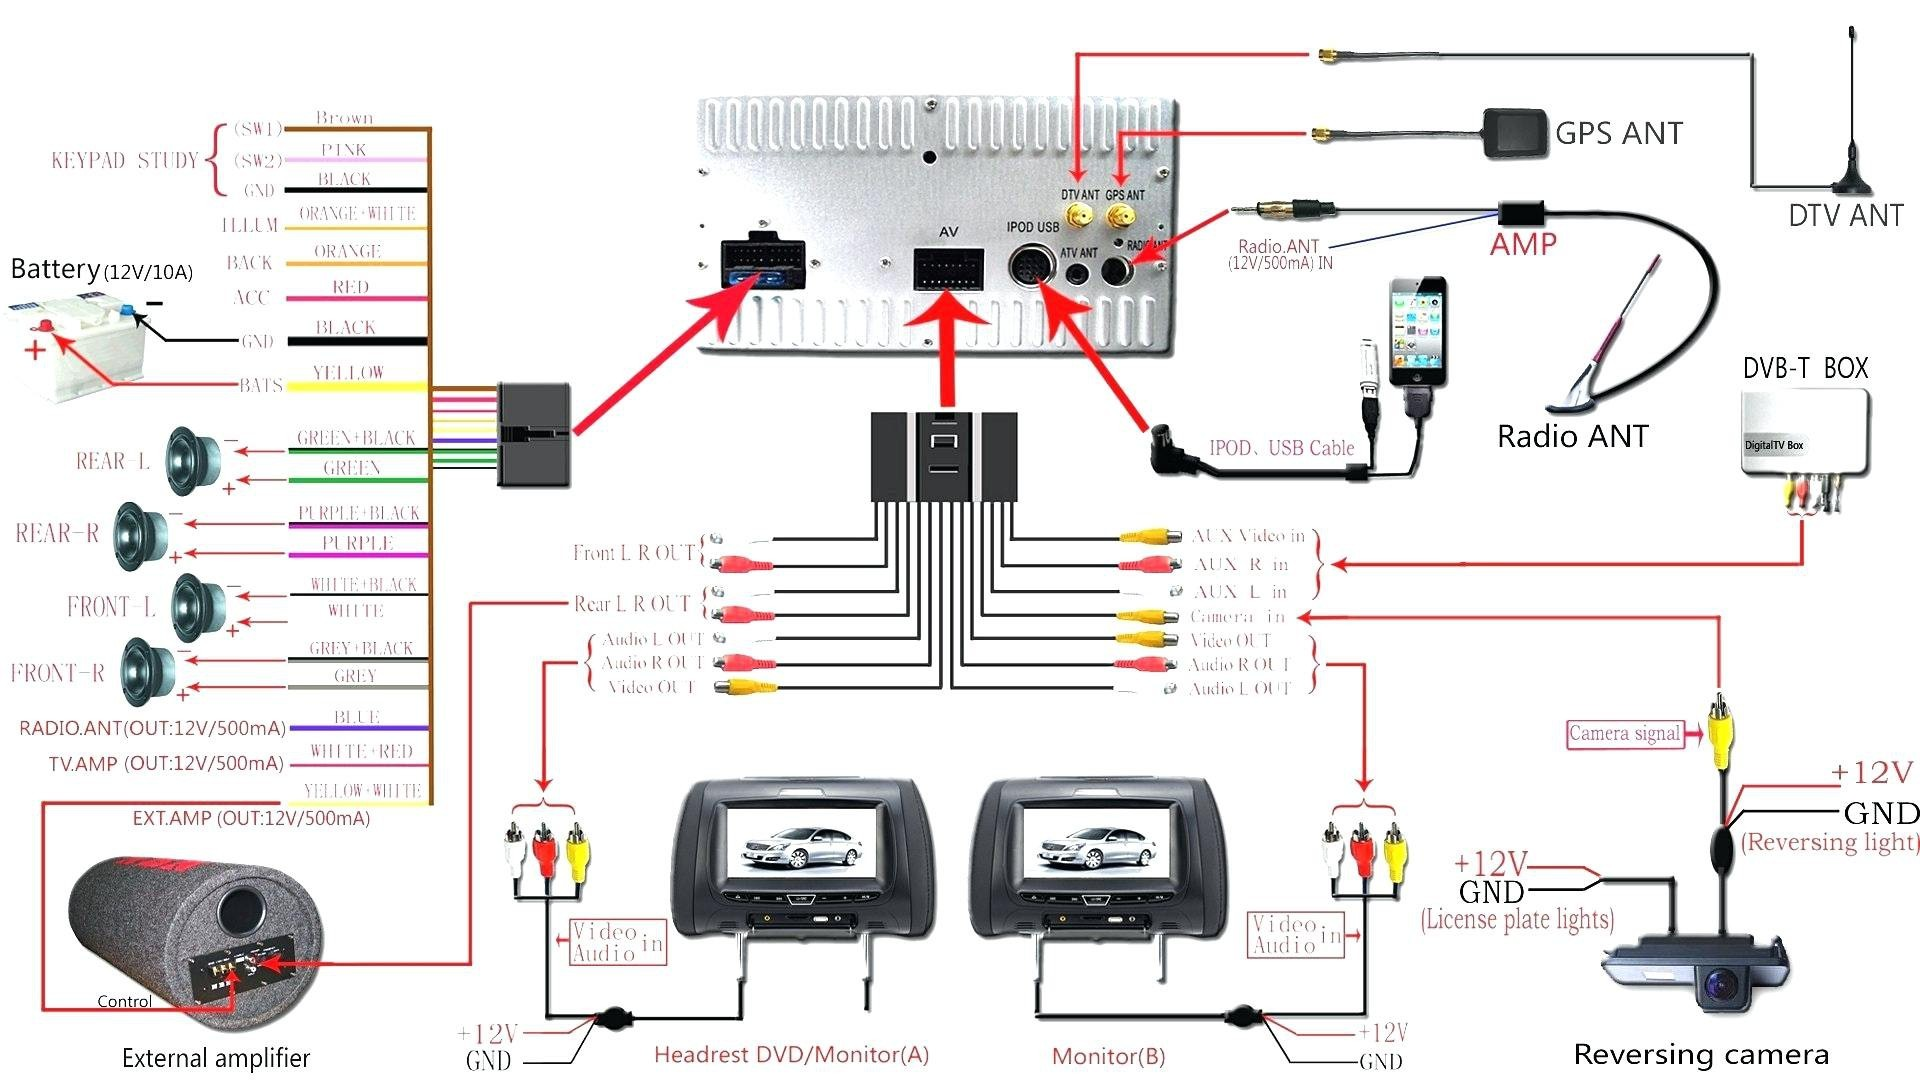 Full Size of Att Uverse Cat5 Wiring Diagram With Radio s Magnificent For U Verse Archived